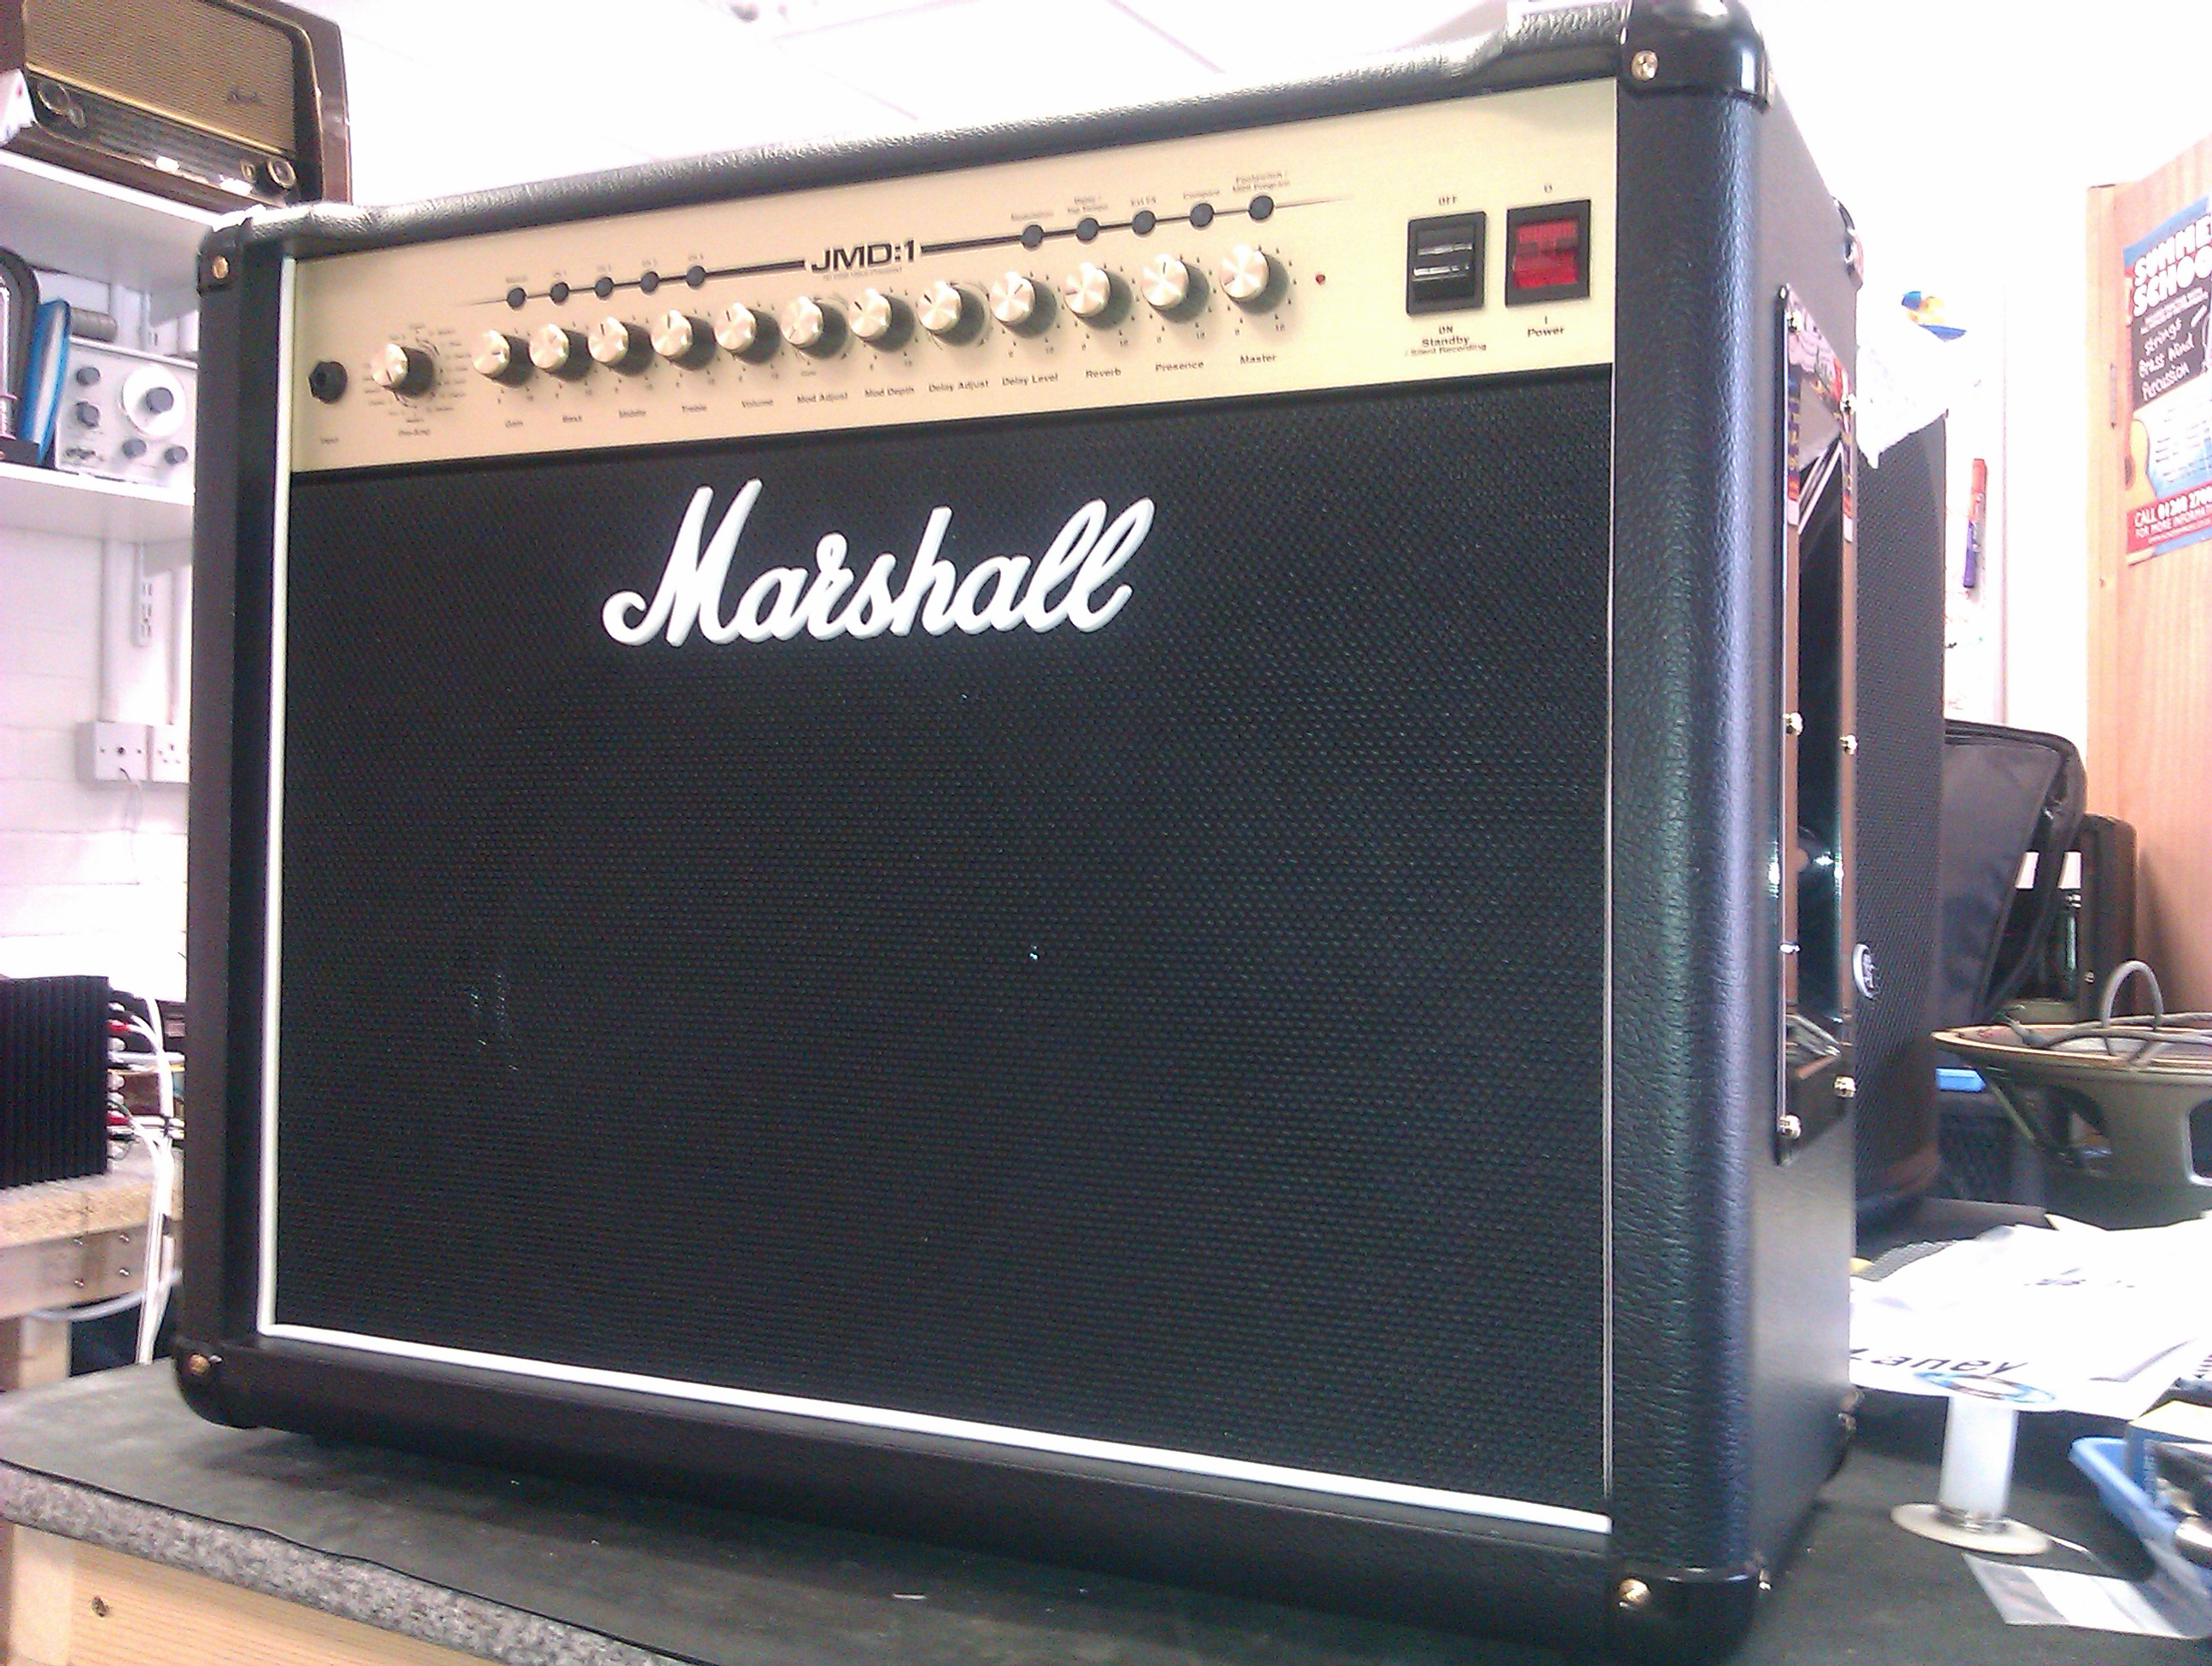 Marshall JMD-1, with traditional switches and piping